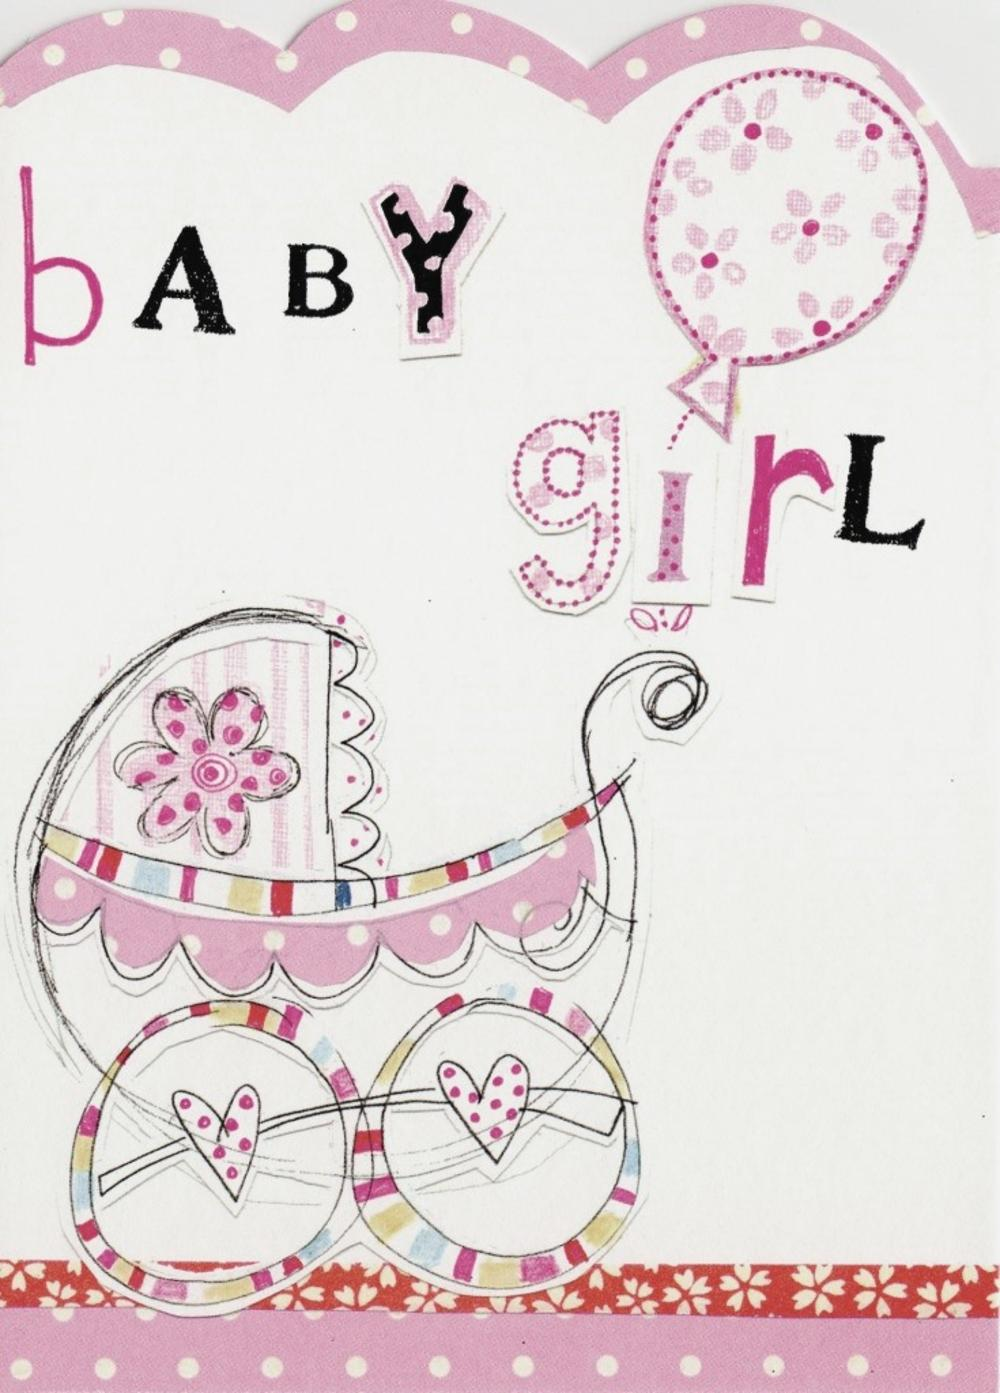 New baby girl paper salad greeting card cards love kates new baby girl paper salad greeting card m4hsunfo